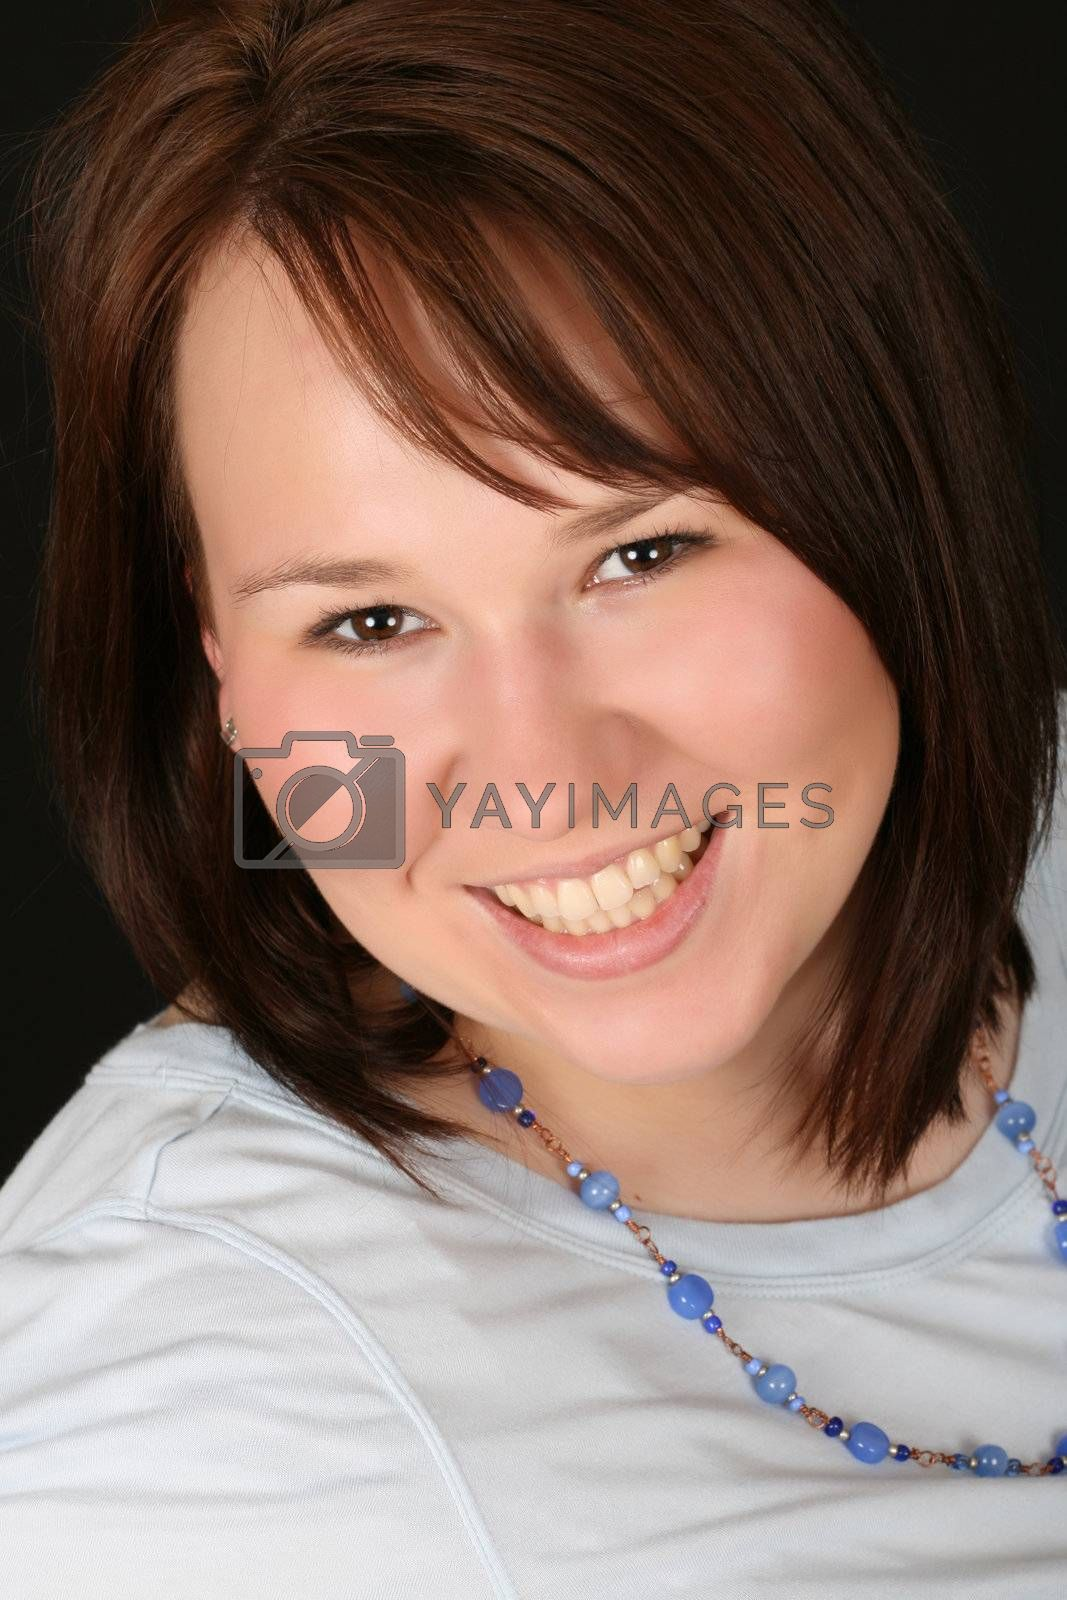 Headshot of beautiful brunette female on a black background